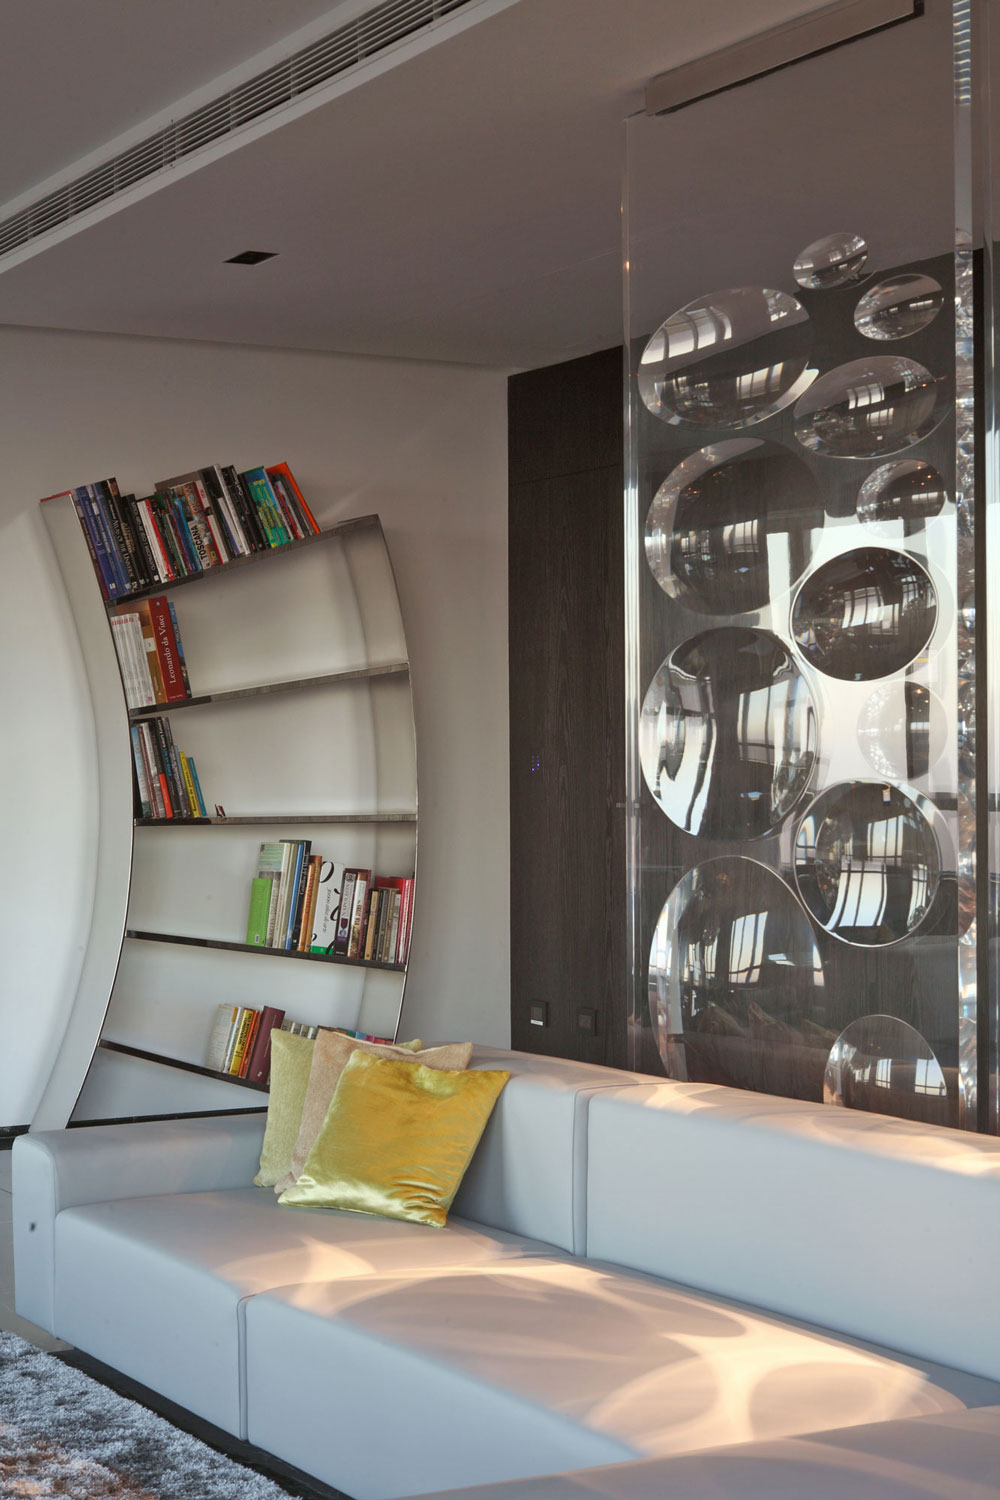 Modern Bookshelf, Sofa, Modern Apartment in Buenos Aires, Argentina by vEstudio Arquitectura